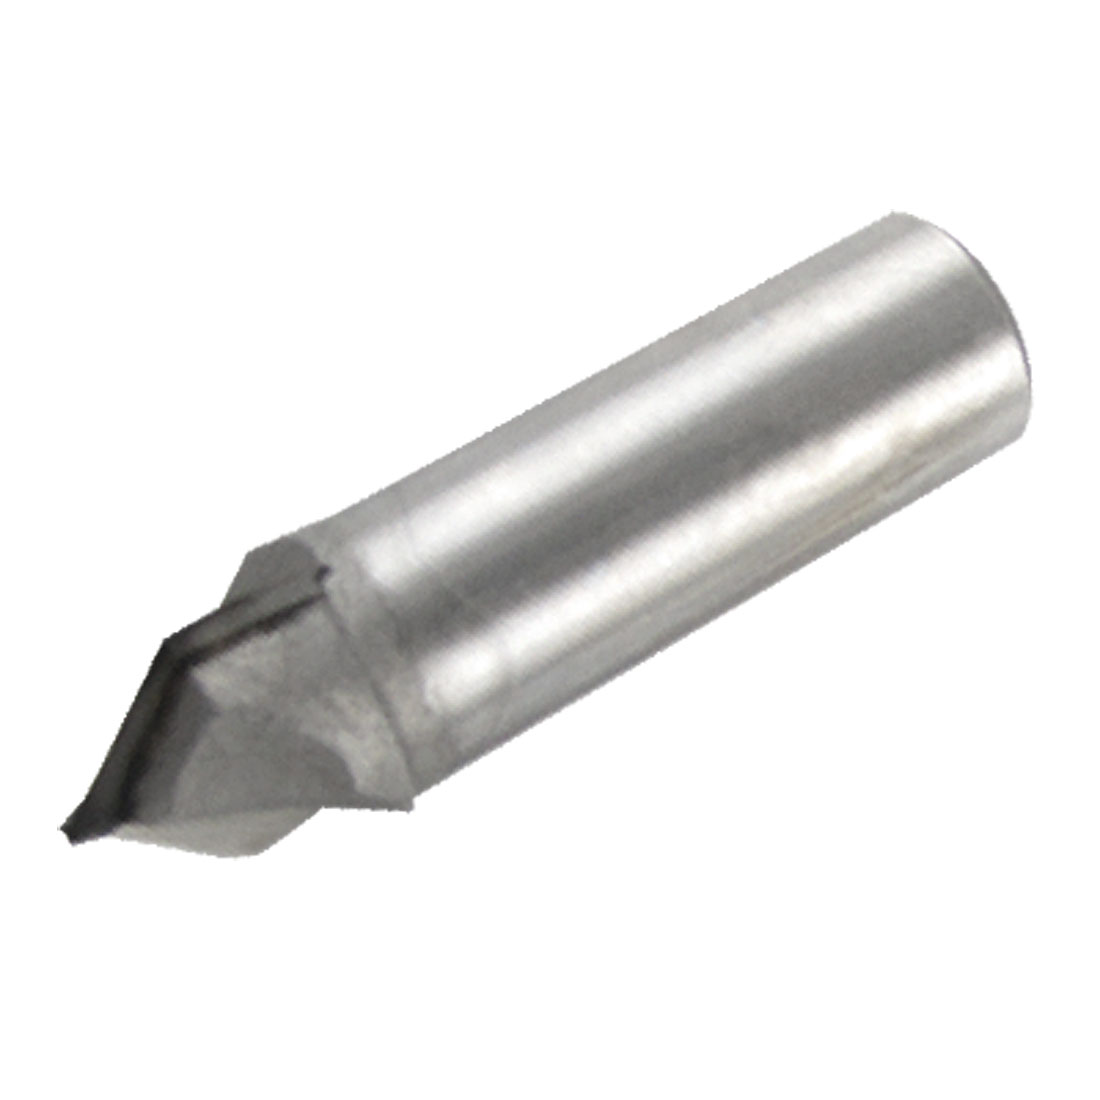 Sharp-V-Type-Slotting-Cutter-Bit-Set-Tool-1-2-X-5-8